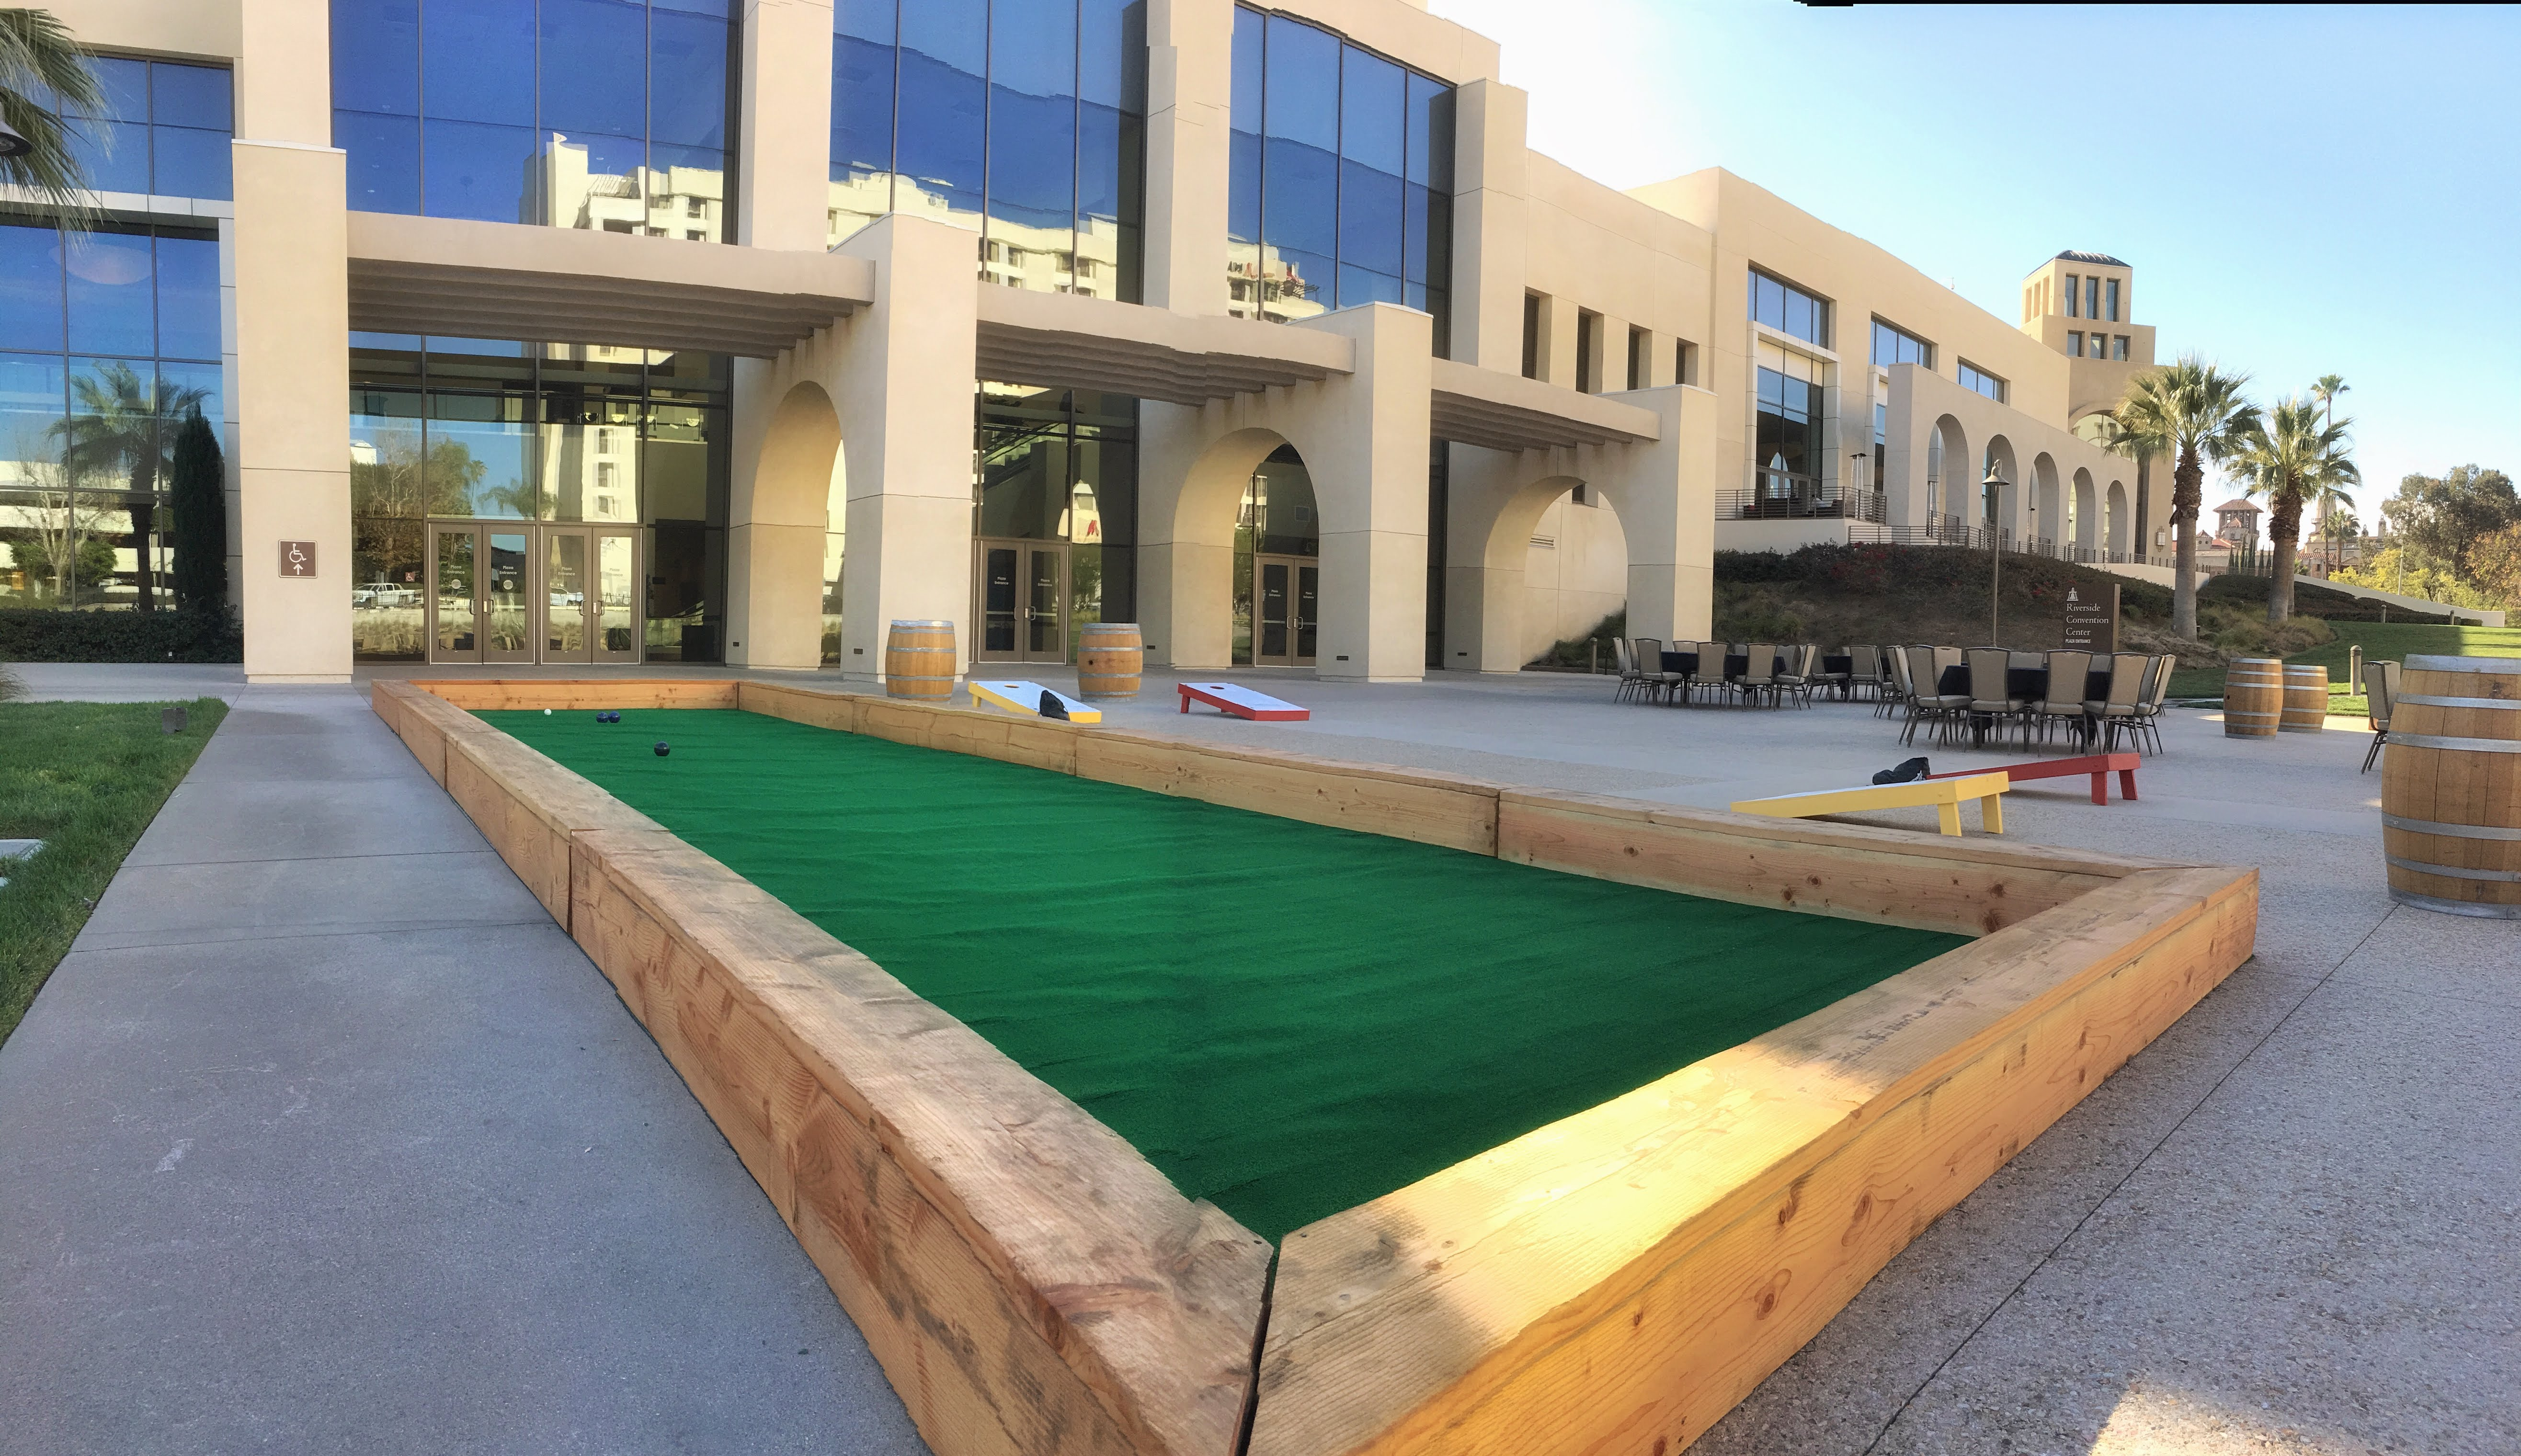 Outdoor games set up for guests' entertainment